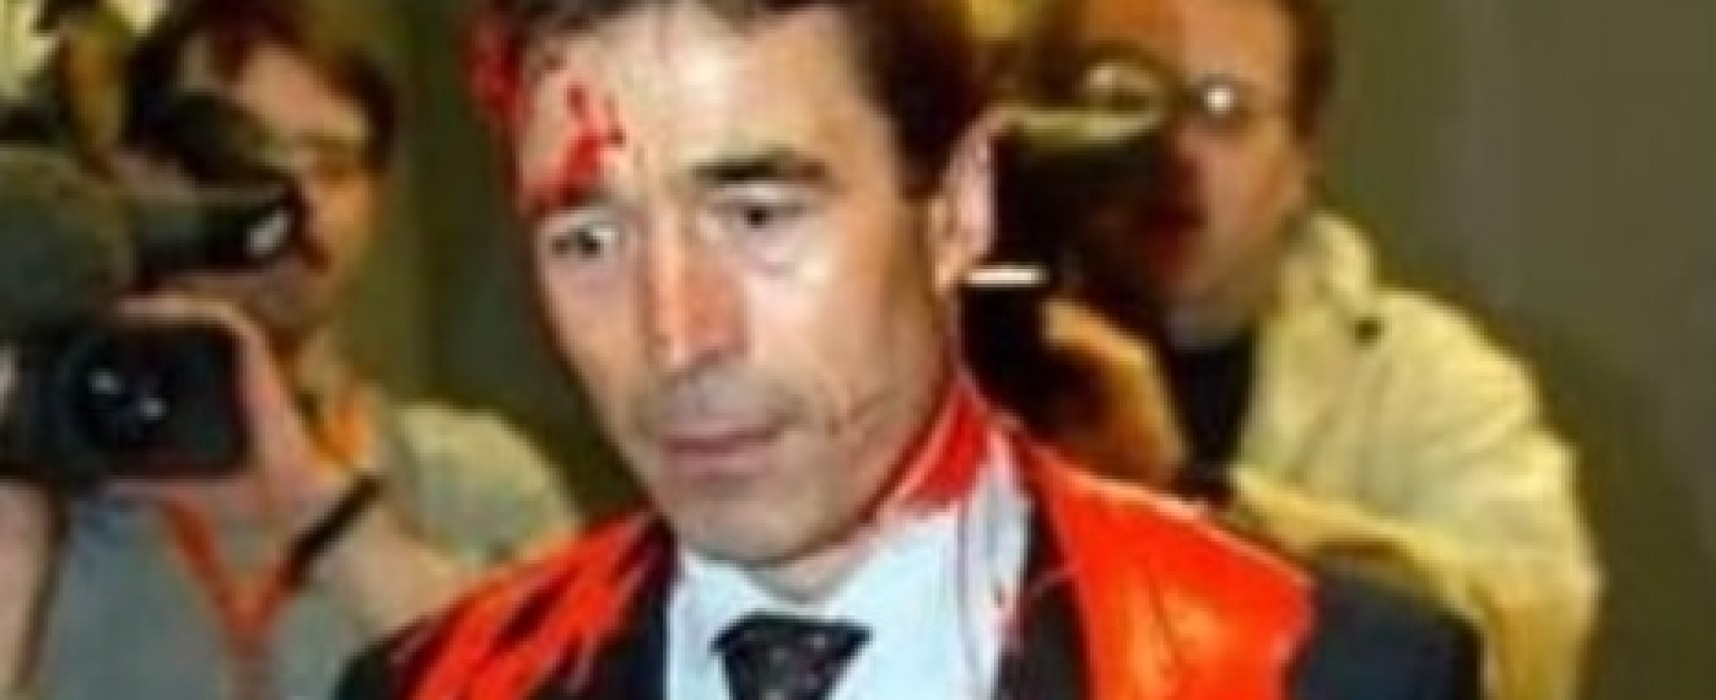 Video with Anders Fogh Rasmussen dated 2003 is presented as current event